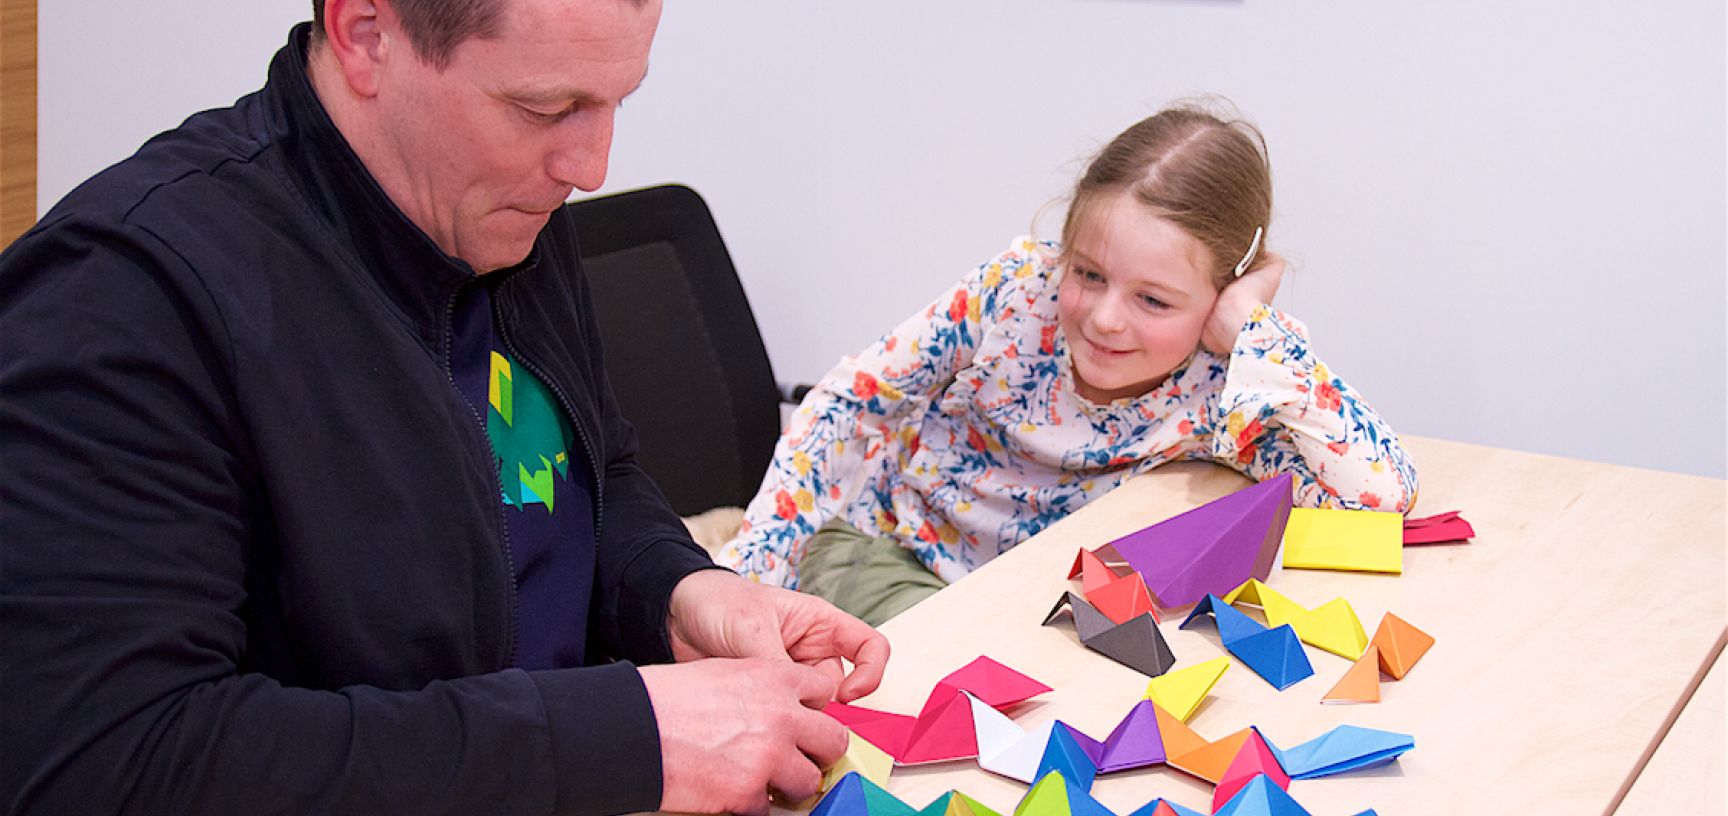 Father and daughter making a colourful dodecahedron